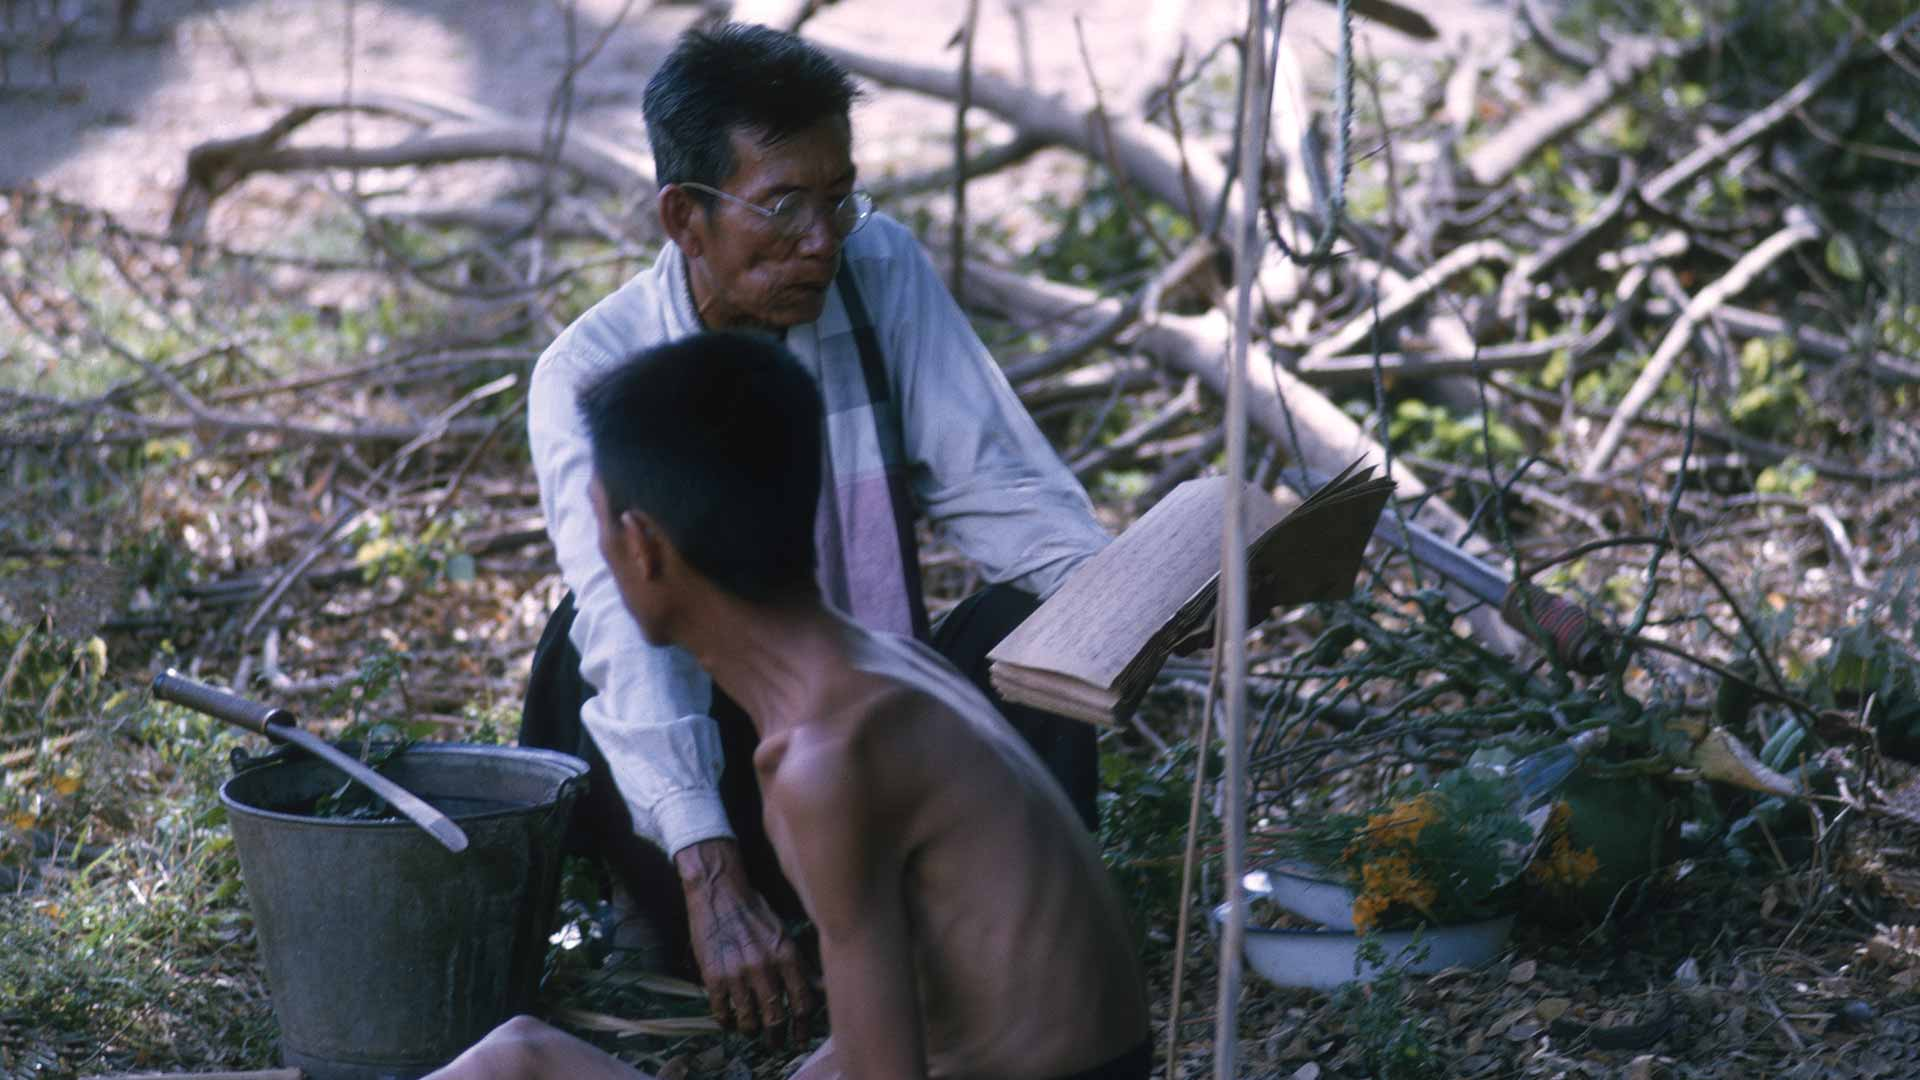 A well dressed man reads from a book to an emaciated shirtless man. Both sit on the ground.